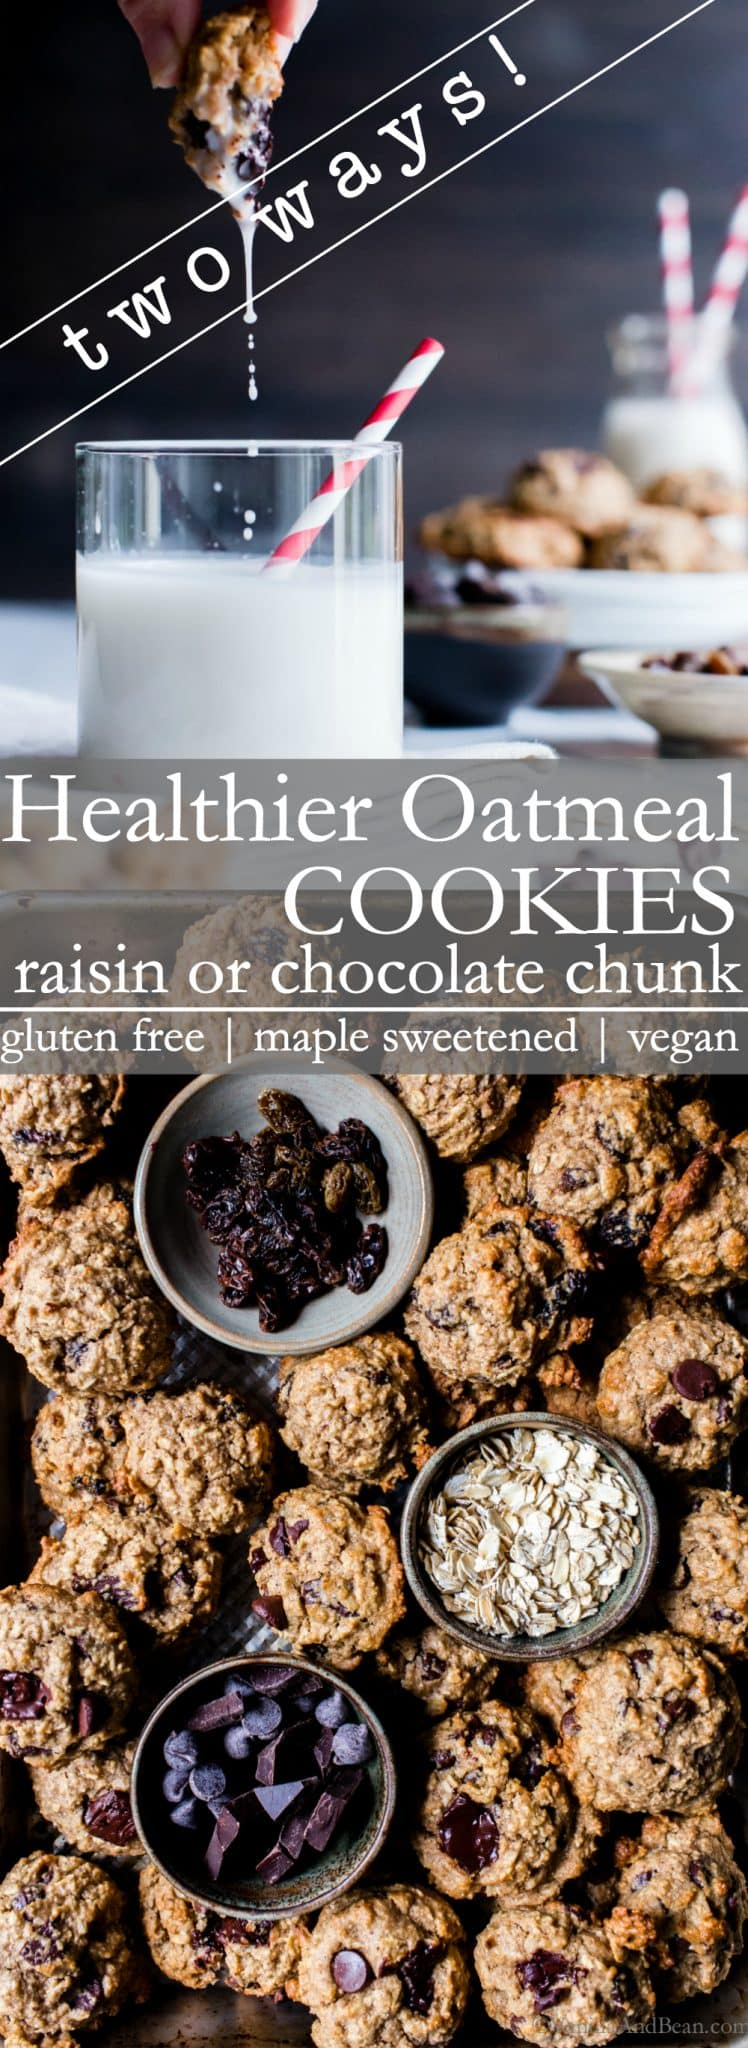 A healthier cookie for when you want to stay on track, but have a need to soothe that sweet tooth! Naturally sweetened Healthier Oatmeal Cookies - gluten free + vegan are soft and chewy, with just a hint of cinnamon. I've included two ways with Healthier Oatmeal Cookies: raisins or chocolate chunk! #GlutenFreeOatmealCookies #VeganOatmealCookies #HealthyOatmealCookies (ad)